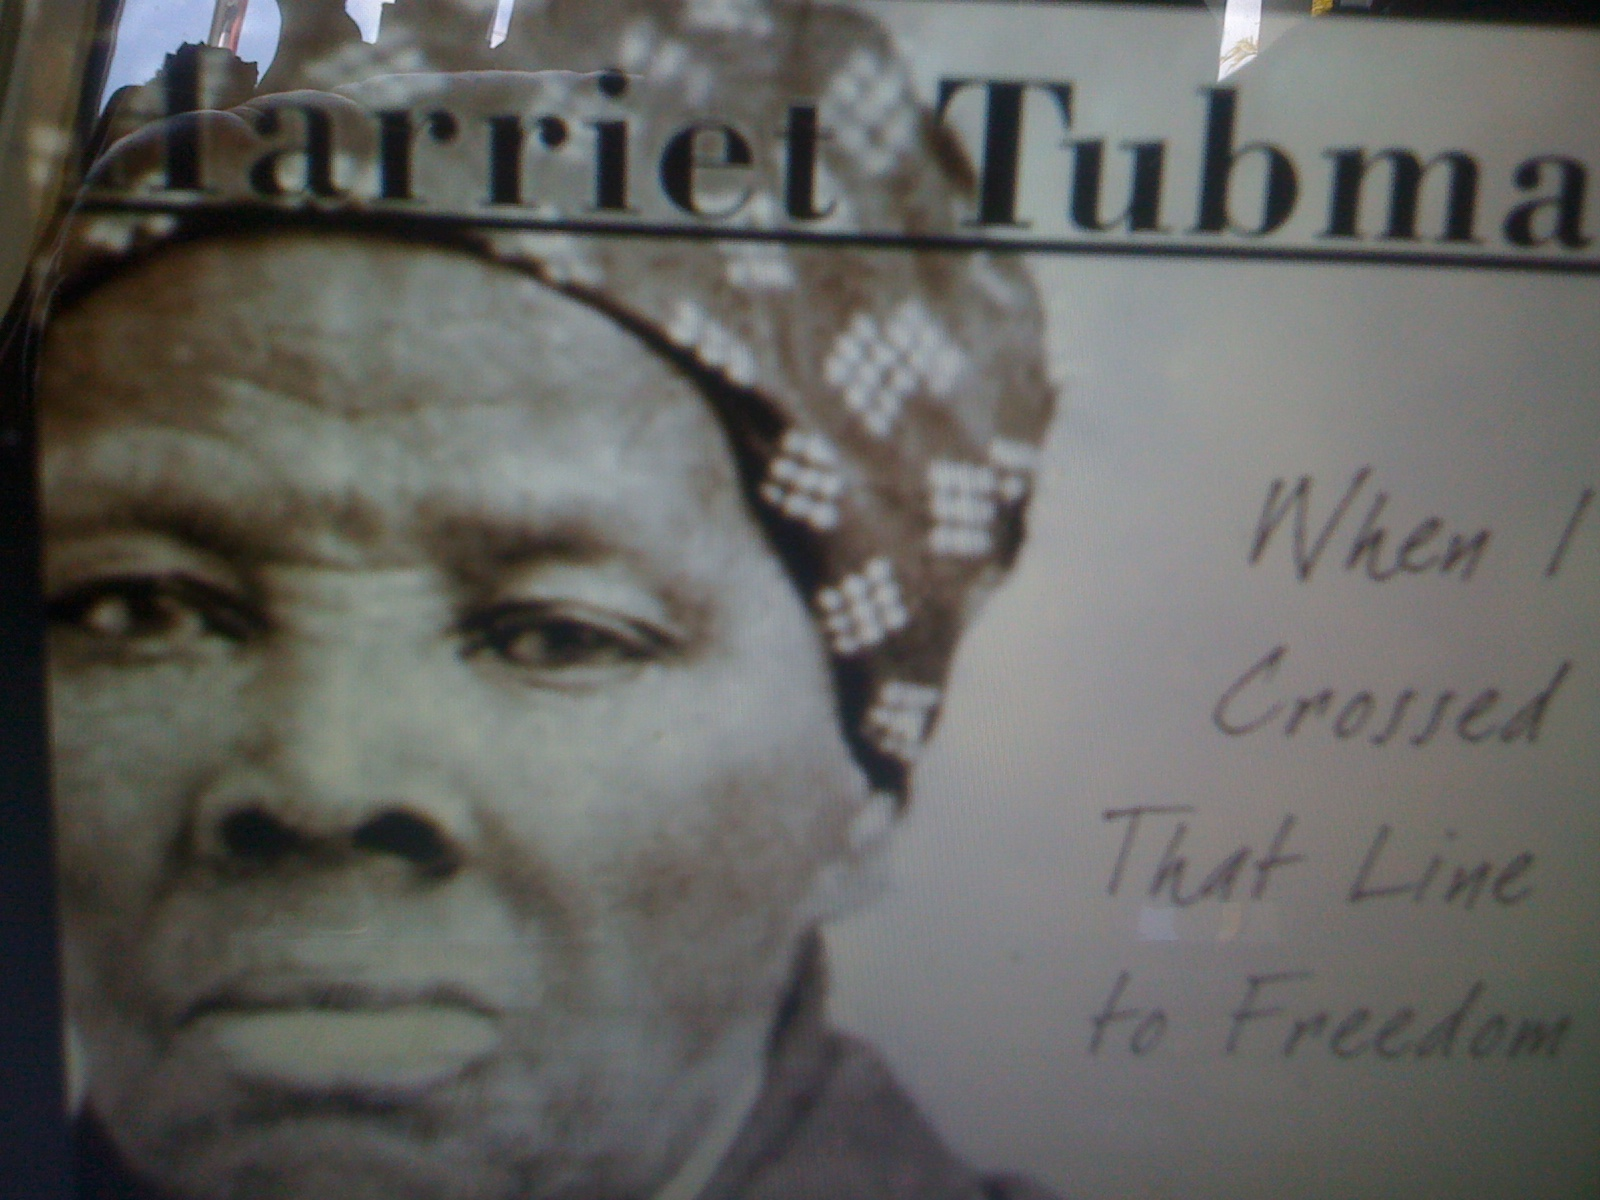 a history of harriet tubman an african american abolitionist and humanitarian Harriet tubman was an african-american abolitionist, humanitarian, and union spy during the american civil war born into slavery, tubman escaped and subsequently made about thirteen missions to rescue approximately seventy enslaved family and friends, using the network of antislavery activists.